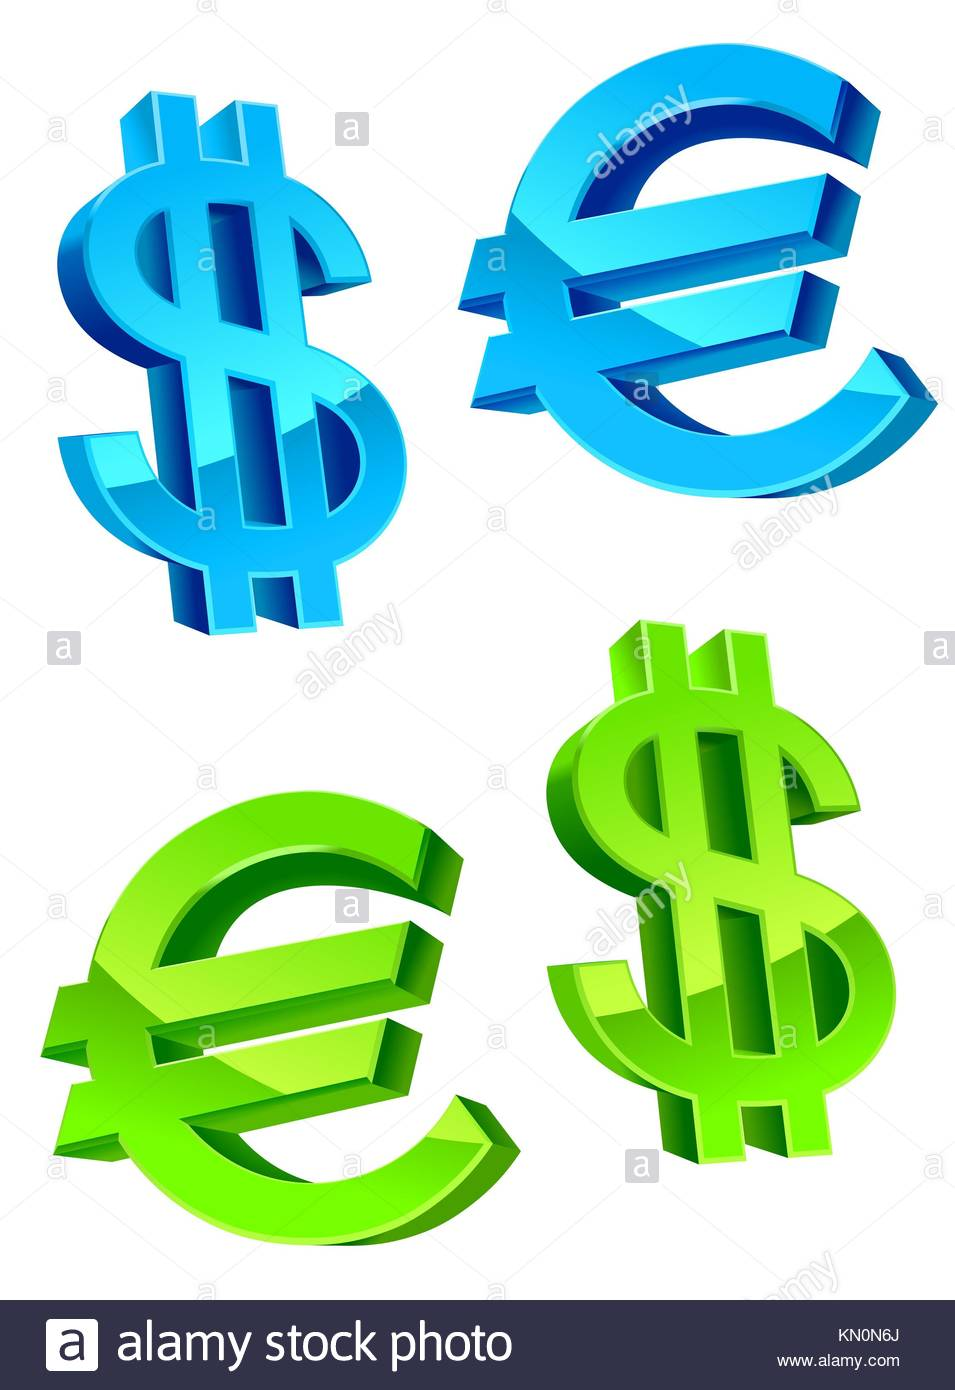 Glossy Currency Symbols Of Usa Dollar And Euro Stock Photo